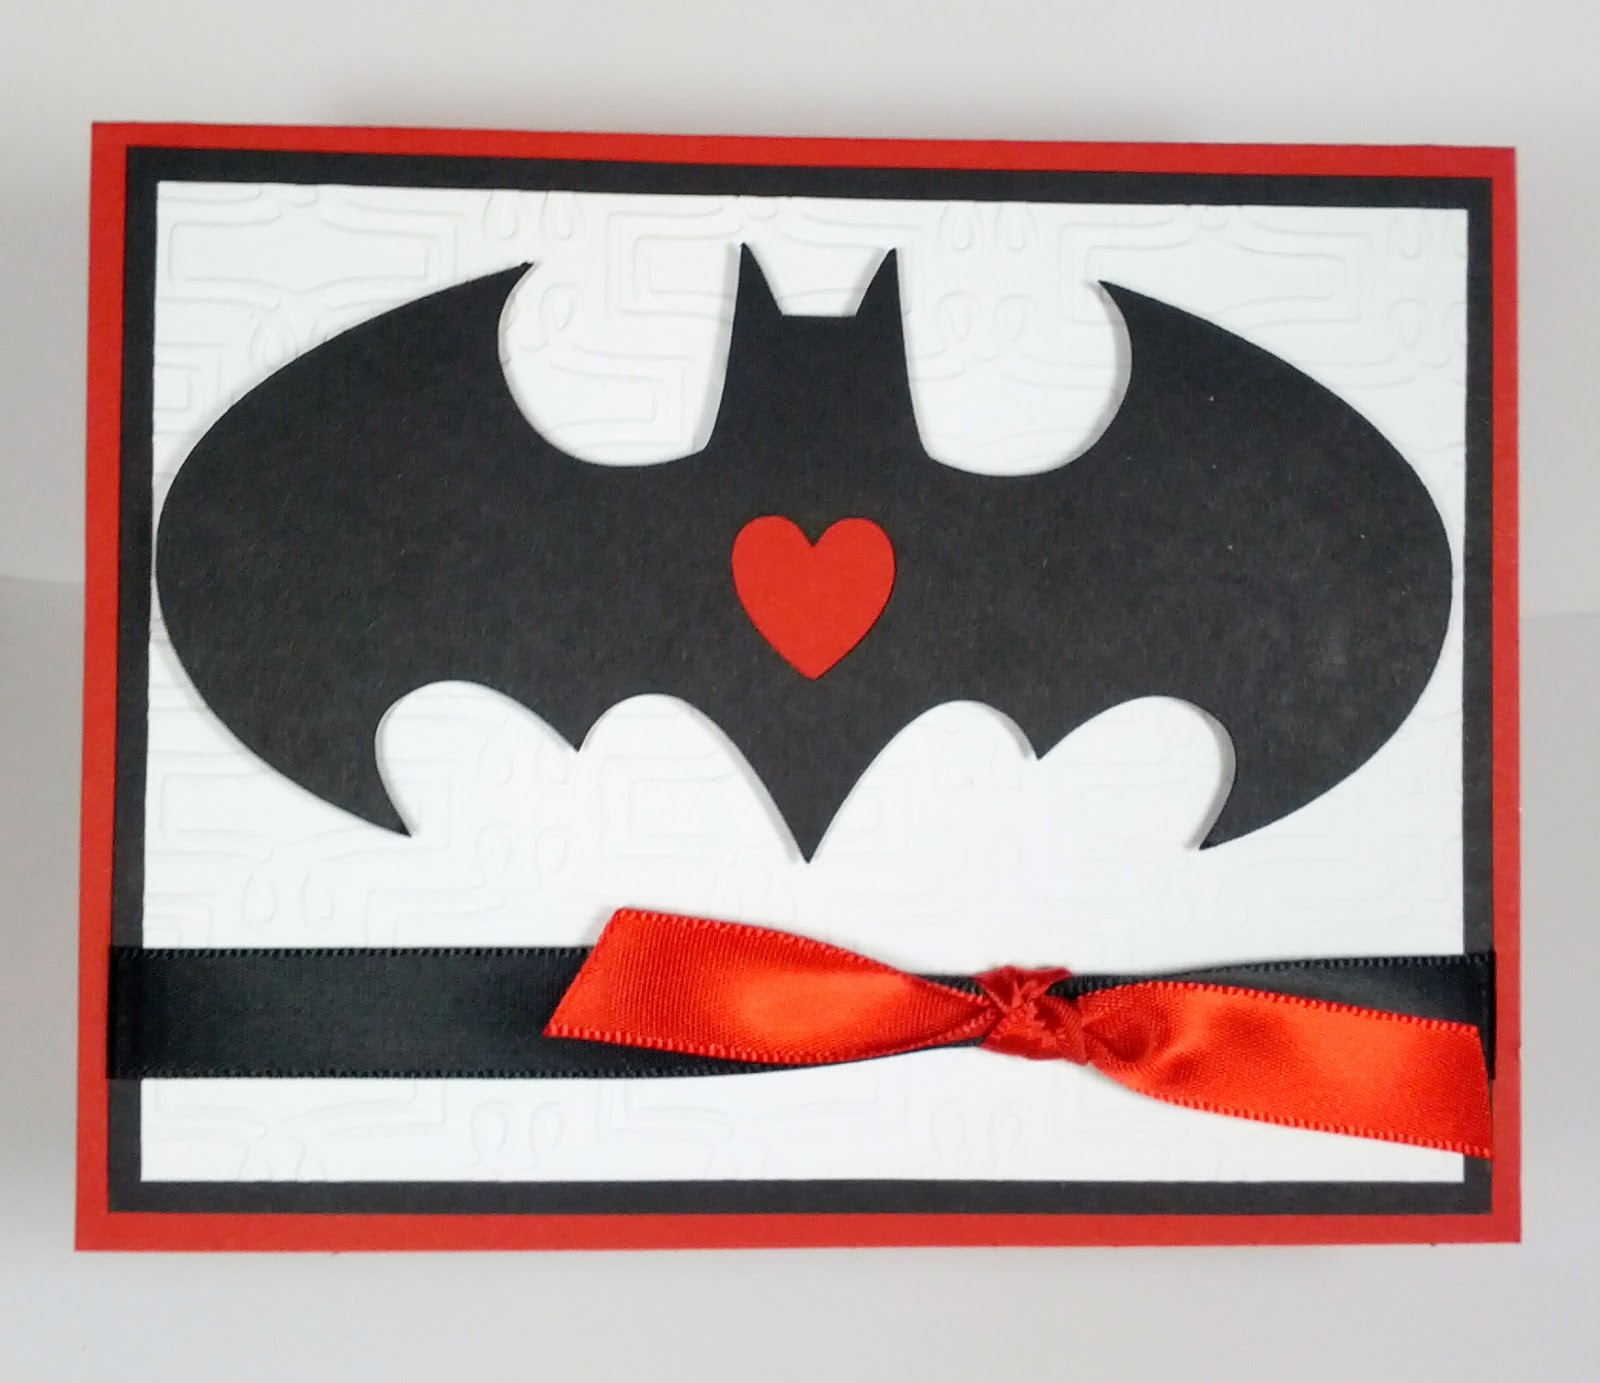 She Then Asked If I Would Make A Valentines Card For Her To Give W/ The  Batman Image On It So This Is The Card I Came Up With: